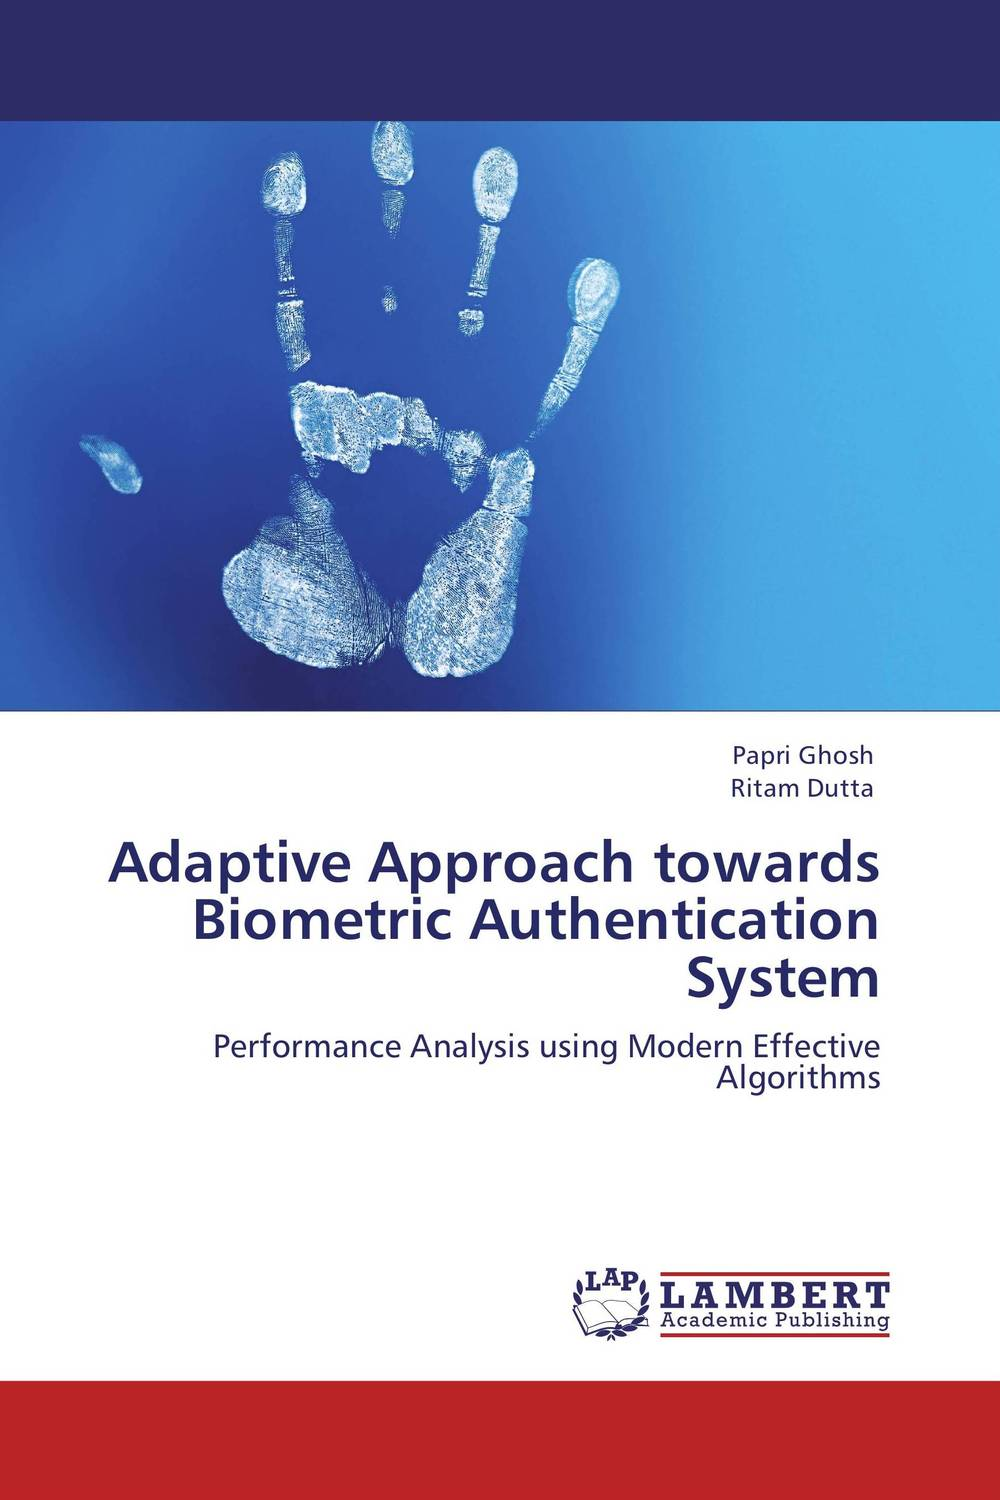 Adaptive Approach towards Biometric Authentication System